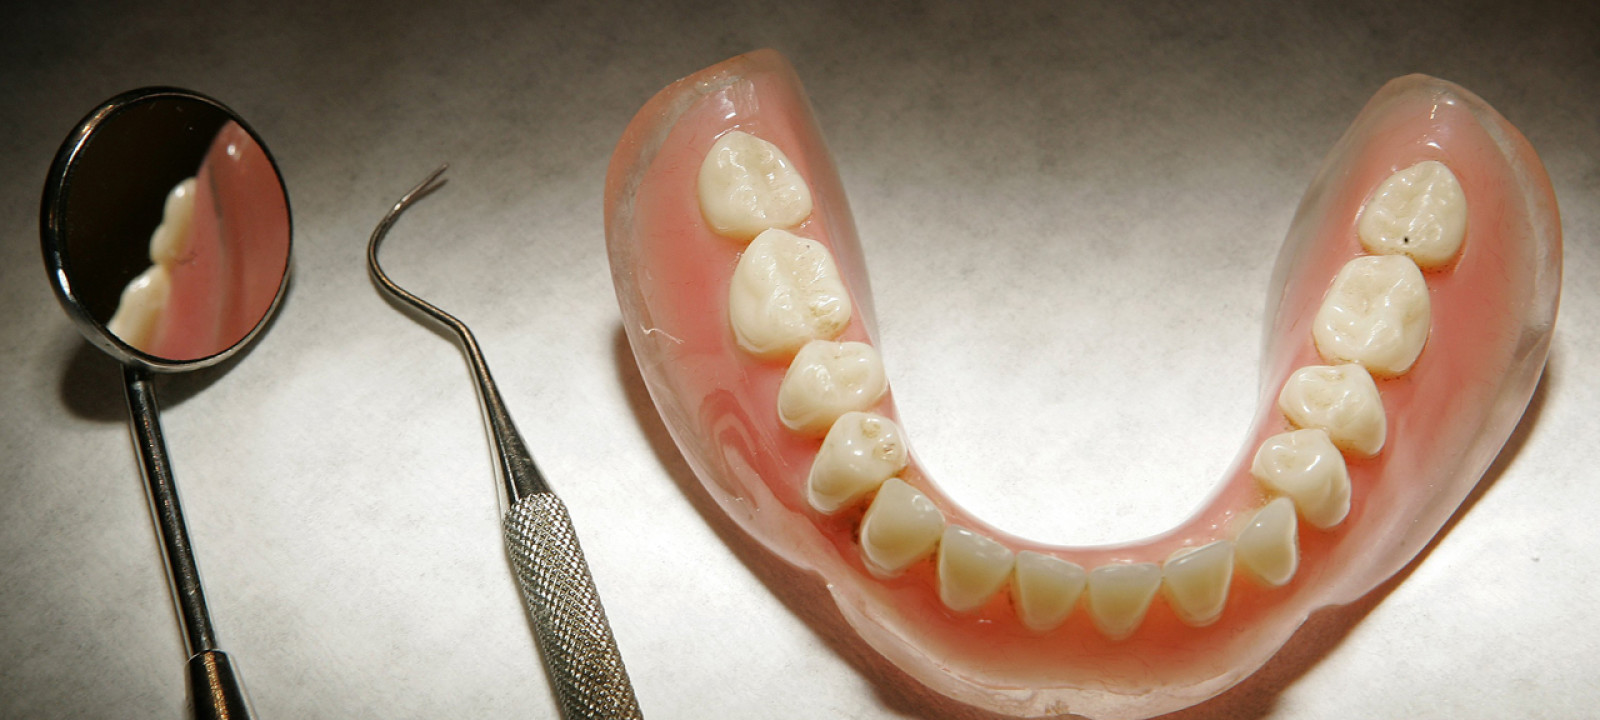 Some British dental tools (Pic: Peter Macdiarmid/Getty Images)